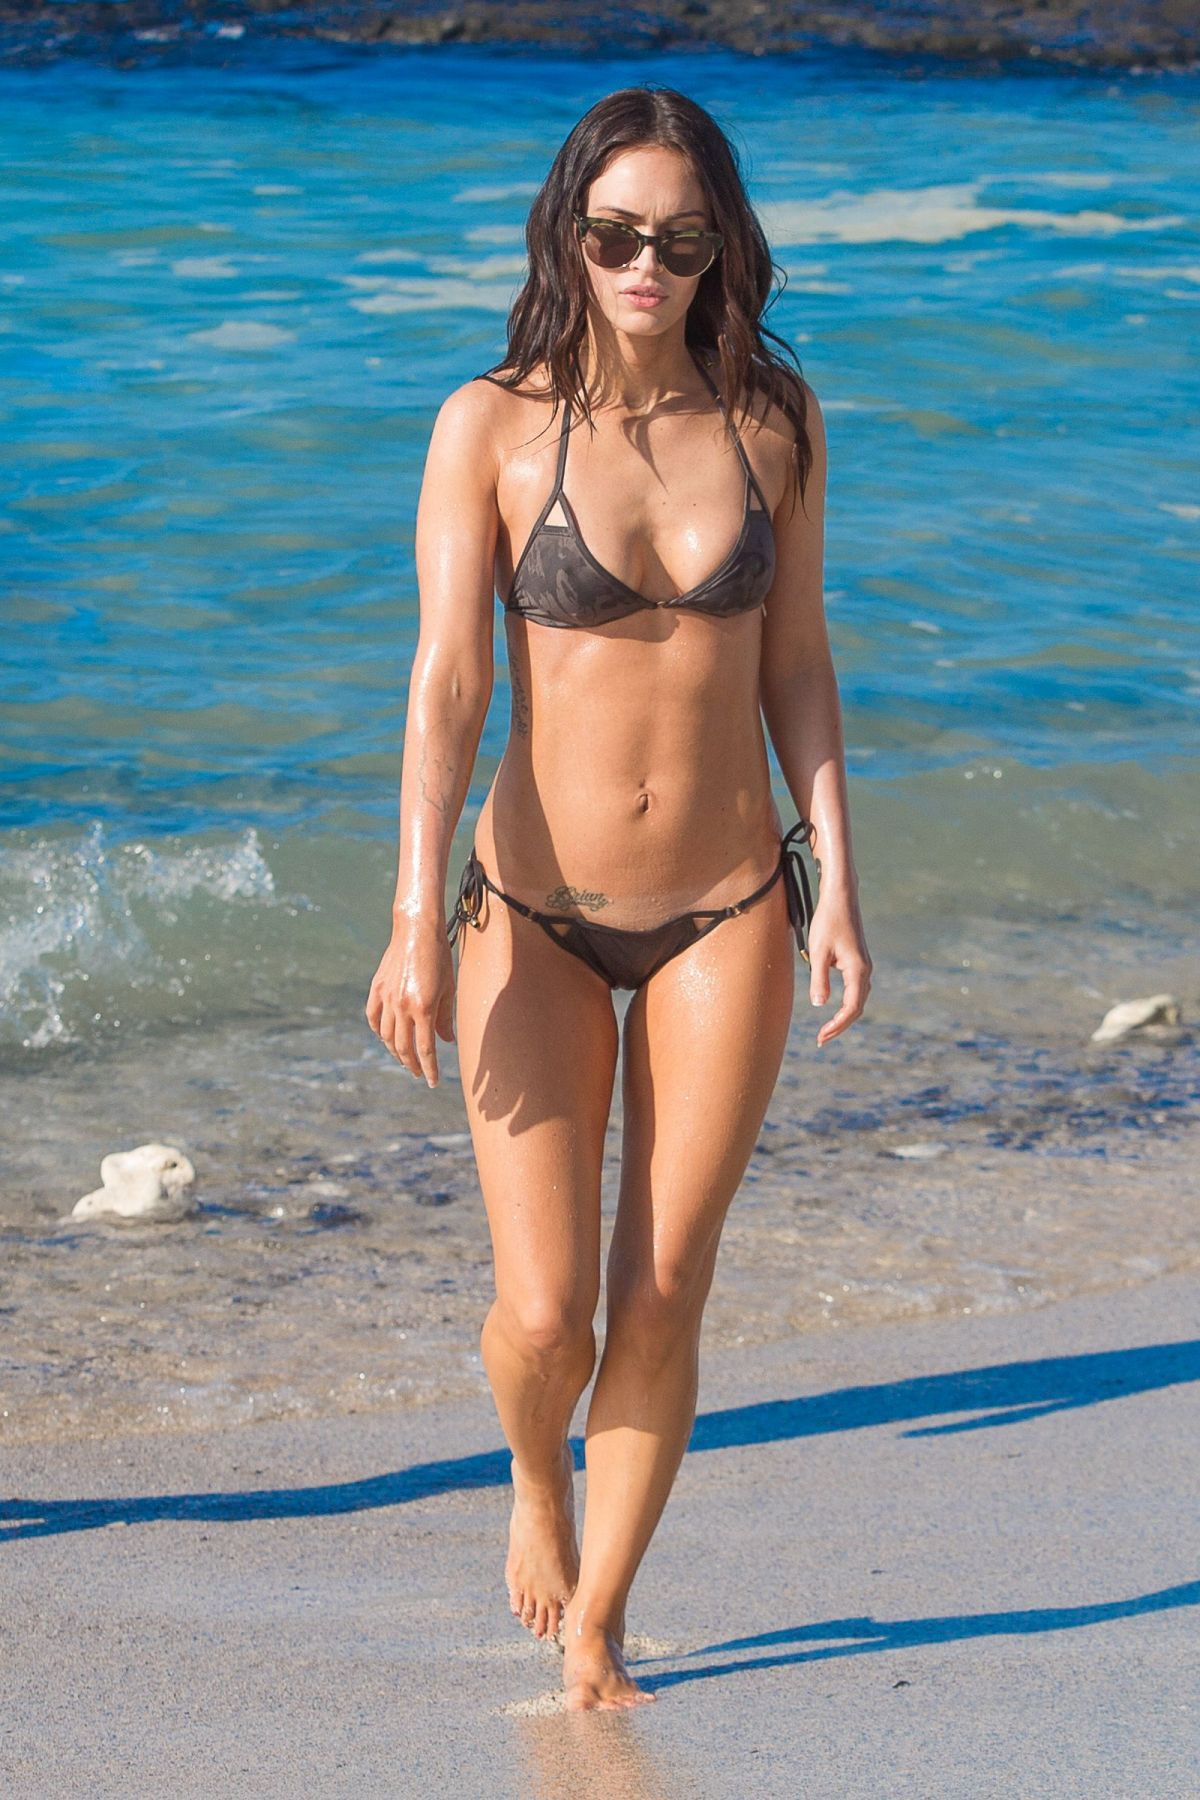 Megan fox bikini nude pictures at